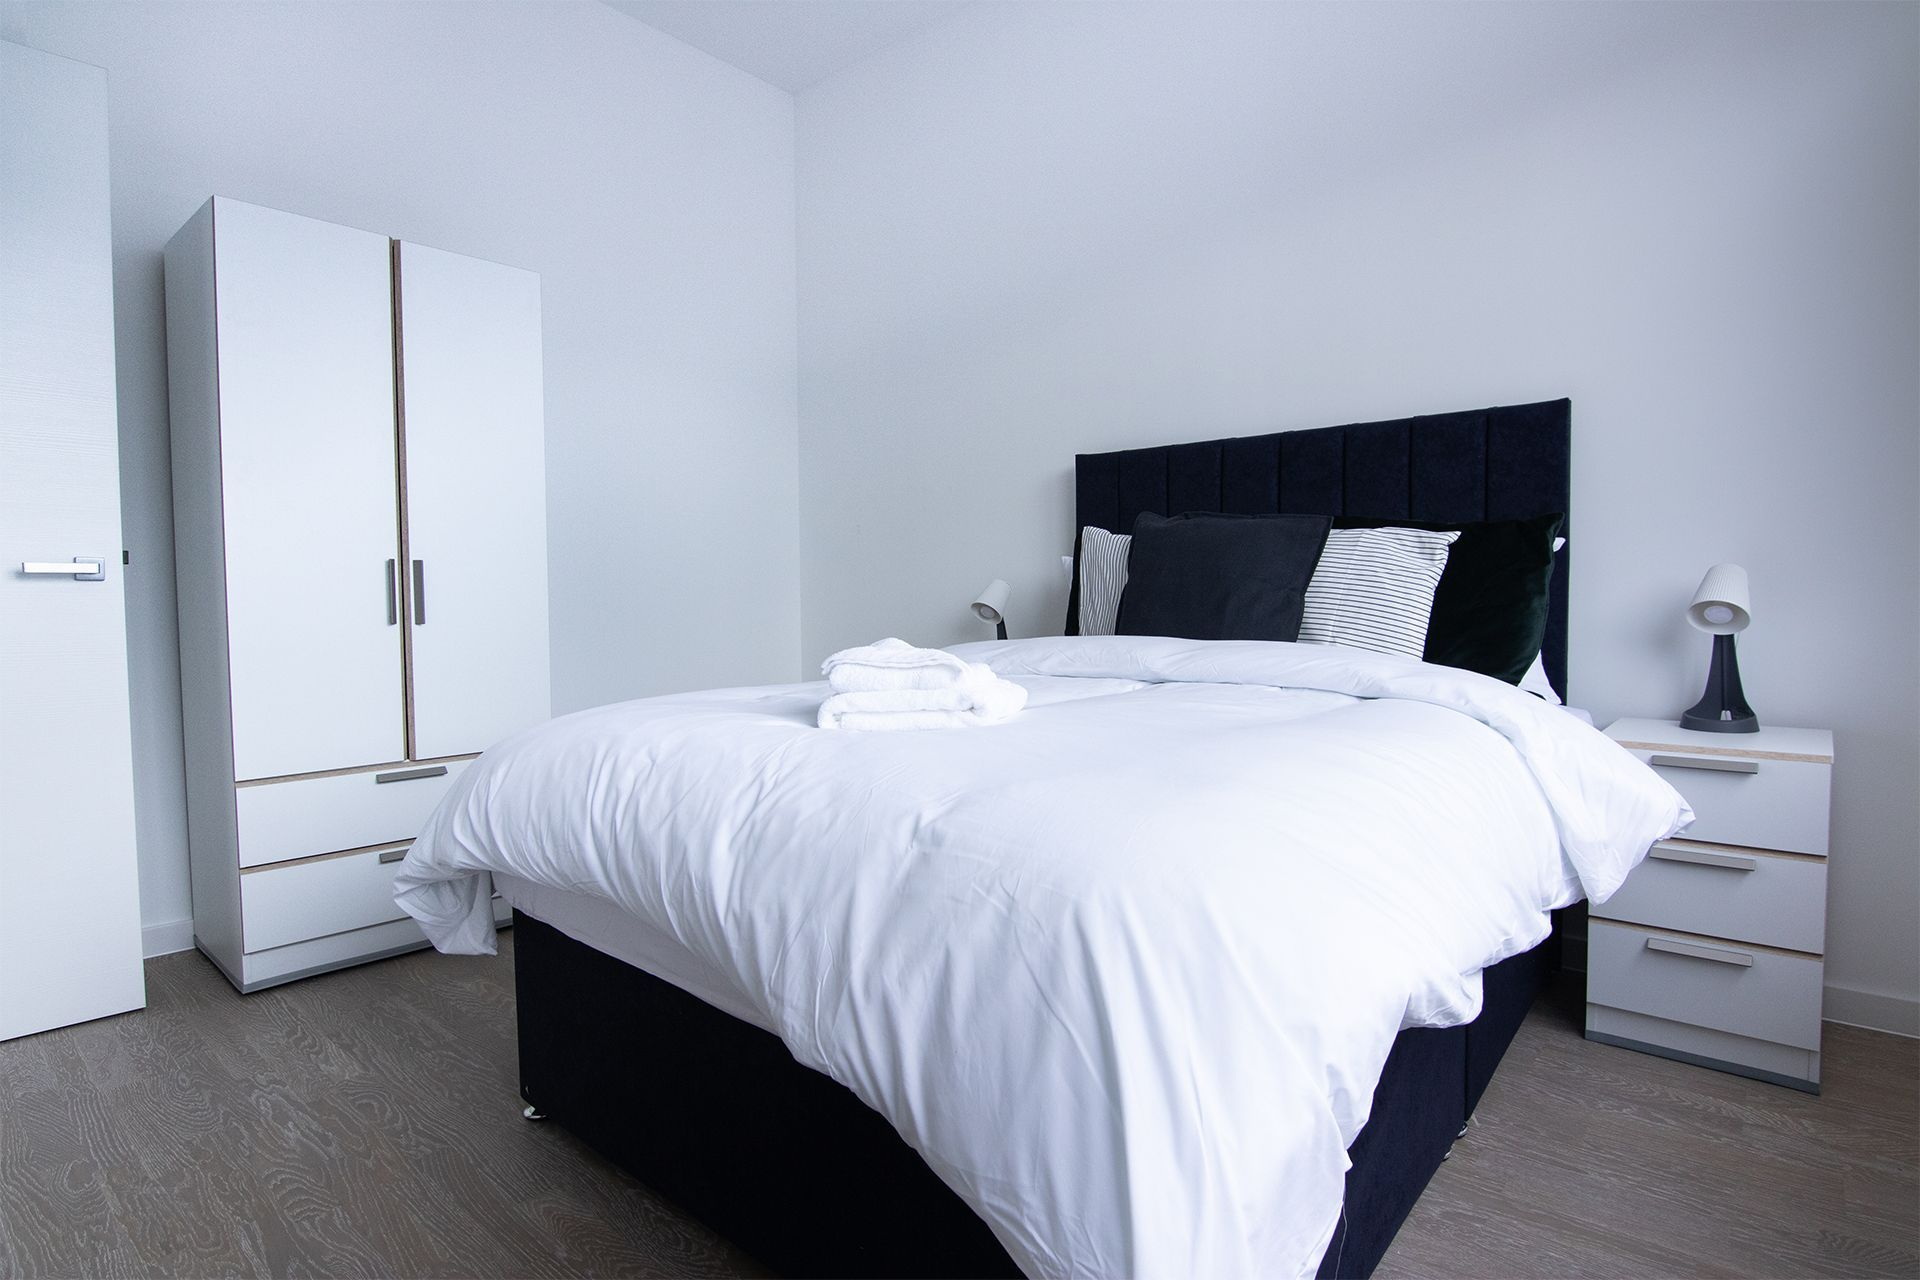 1 Bedroom apartment to rent in London VIL-ST-0004